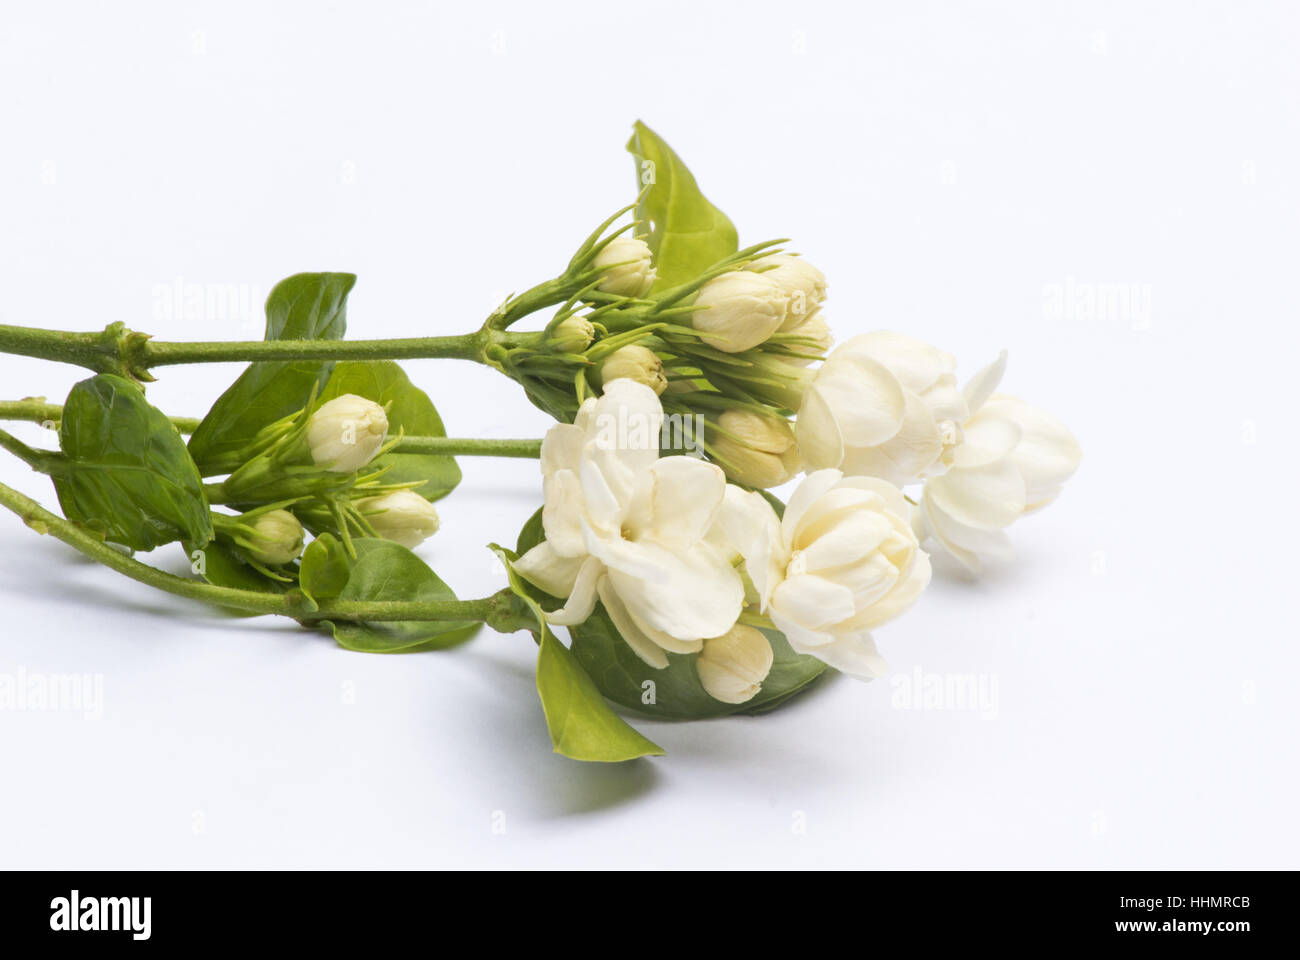 Jasmine flowers arabian jasmine jasminum sambac on white jasmine flowers arabian jasmine jasminum sambac on white background izmirmasajfo